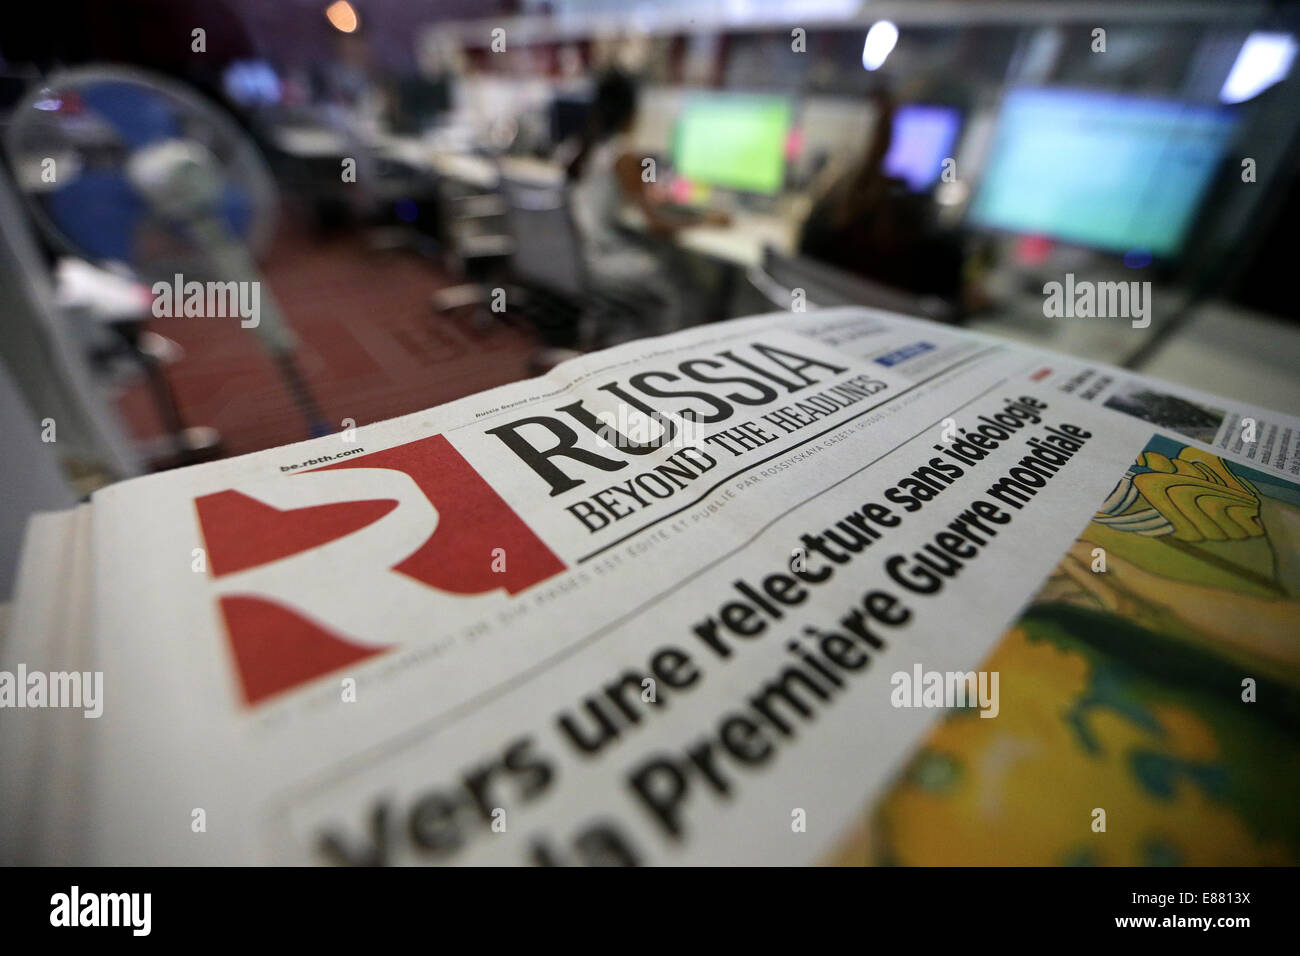 MOSCOW, RUSSIA. OCTOBER 2, 2014. At the offices of the 'Russia Beyond the Headlines' (RBTH) multilingual - Stock Image